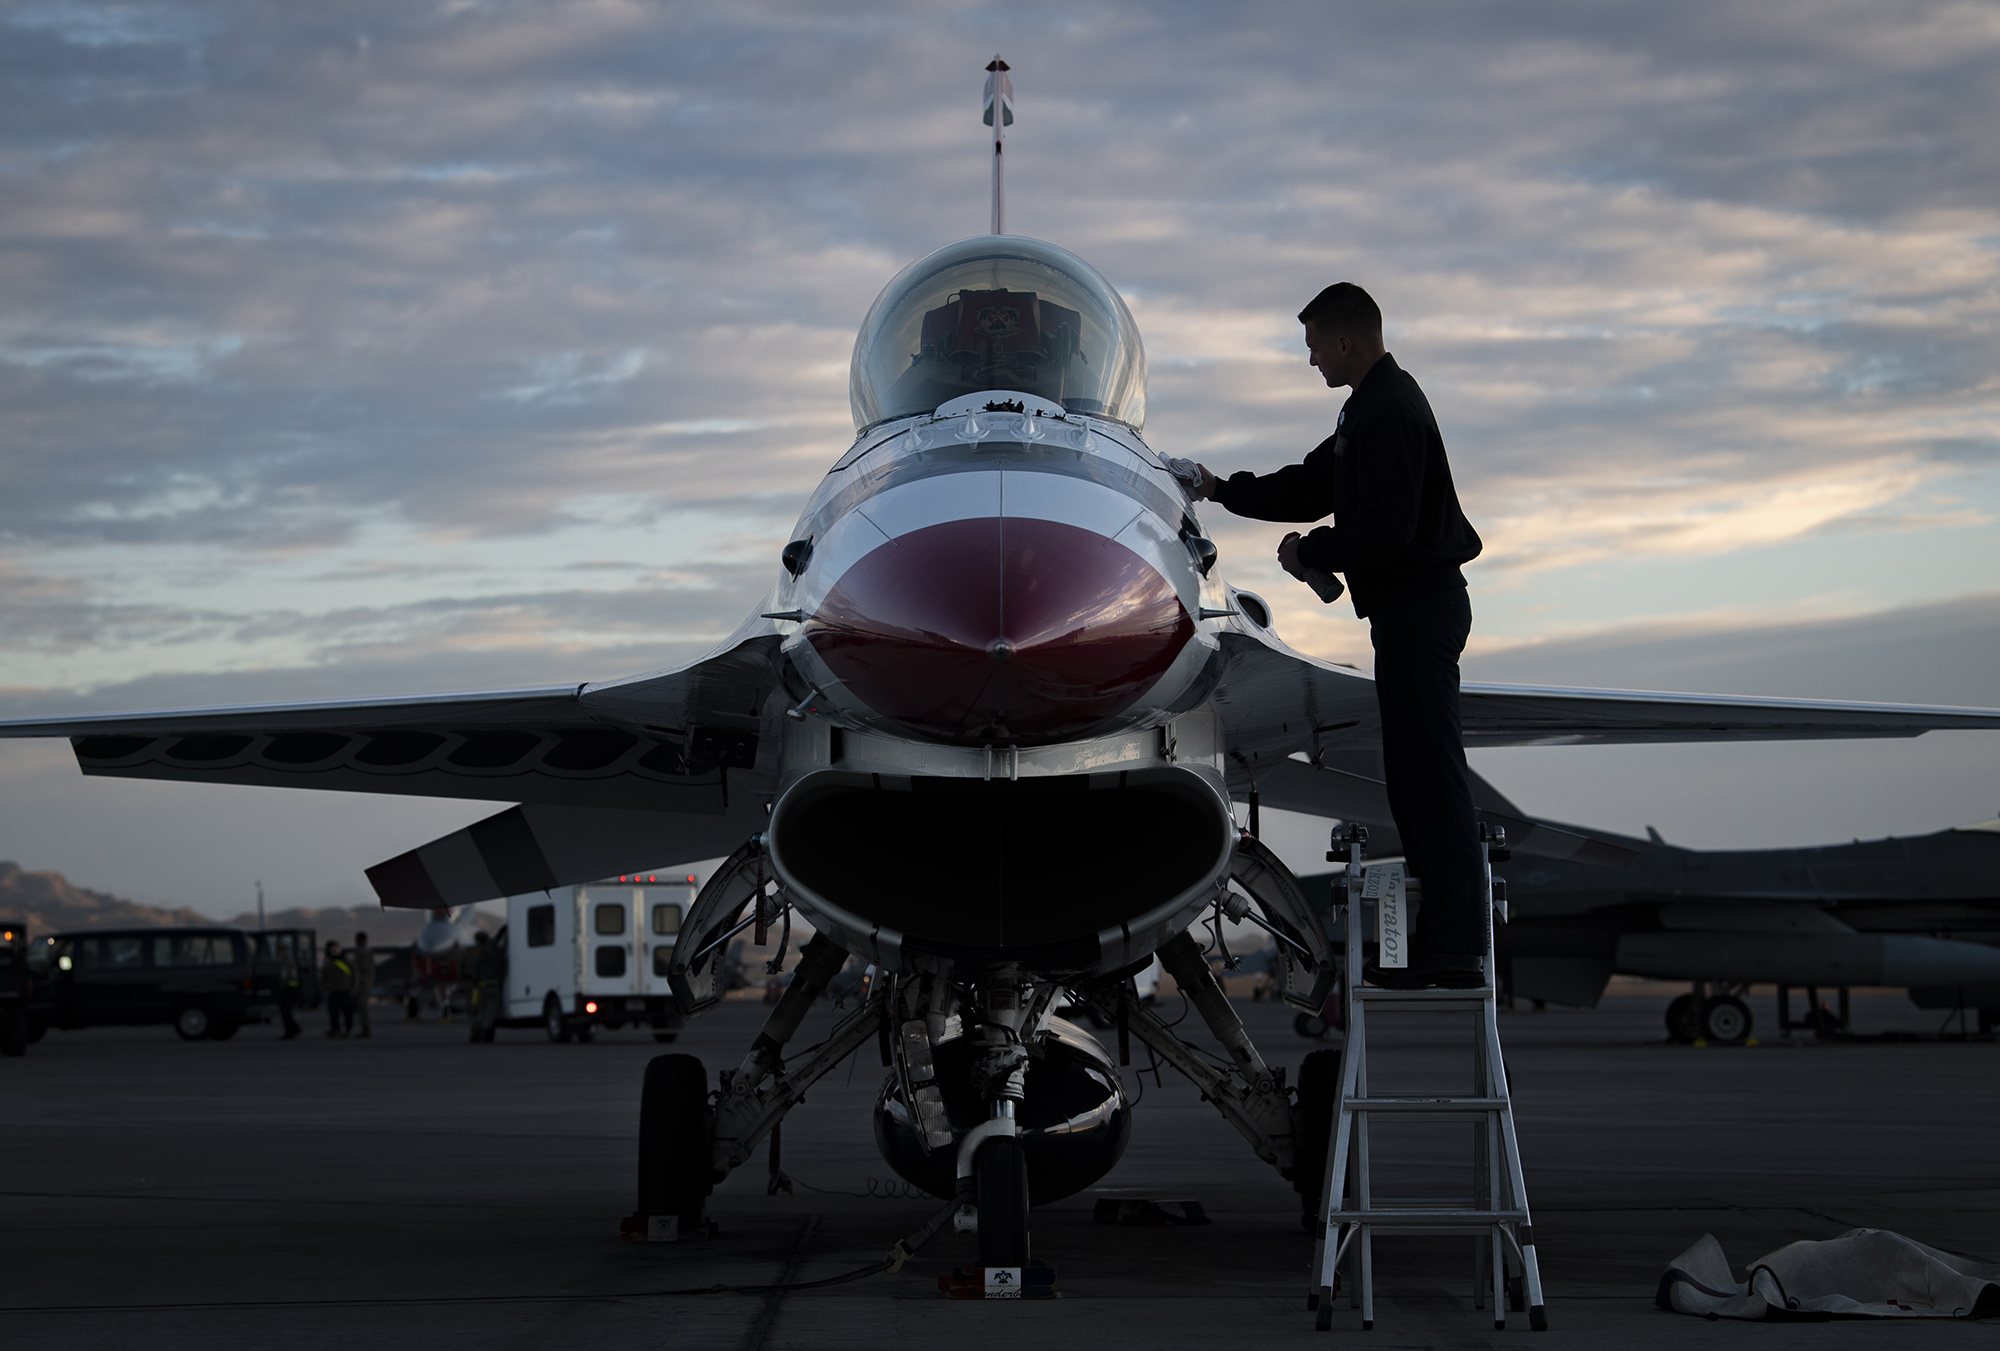 Staff Sgt. Connor Stowers, an avionics systems technician assigned to the United States Air Force Air Demonstration Squadron